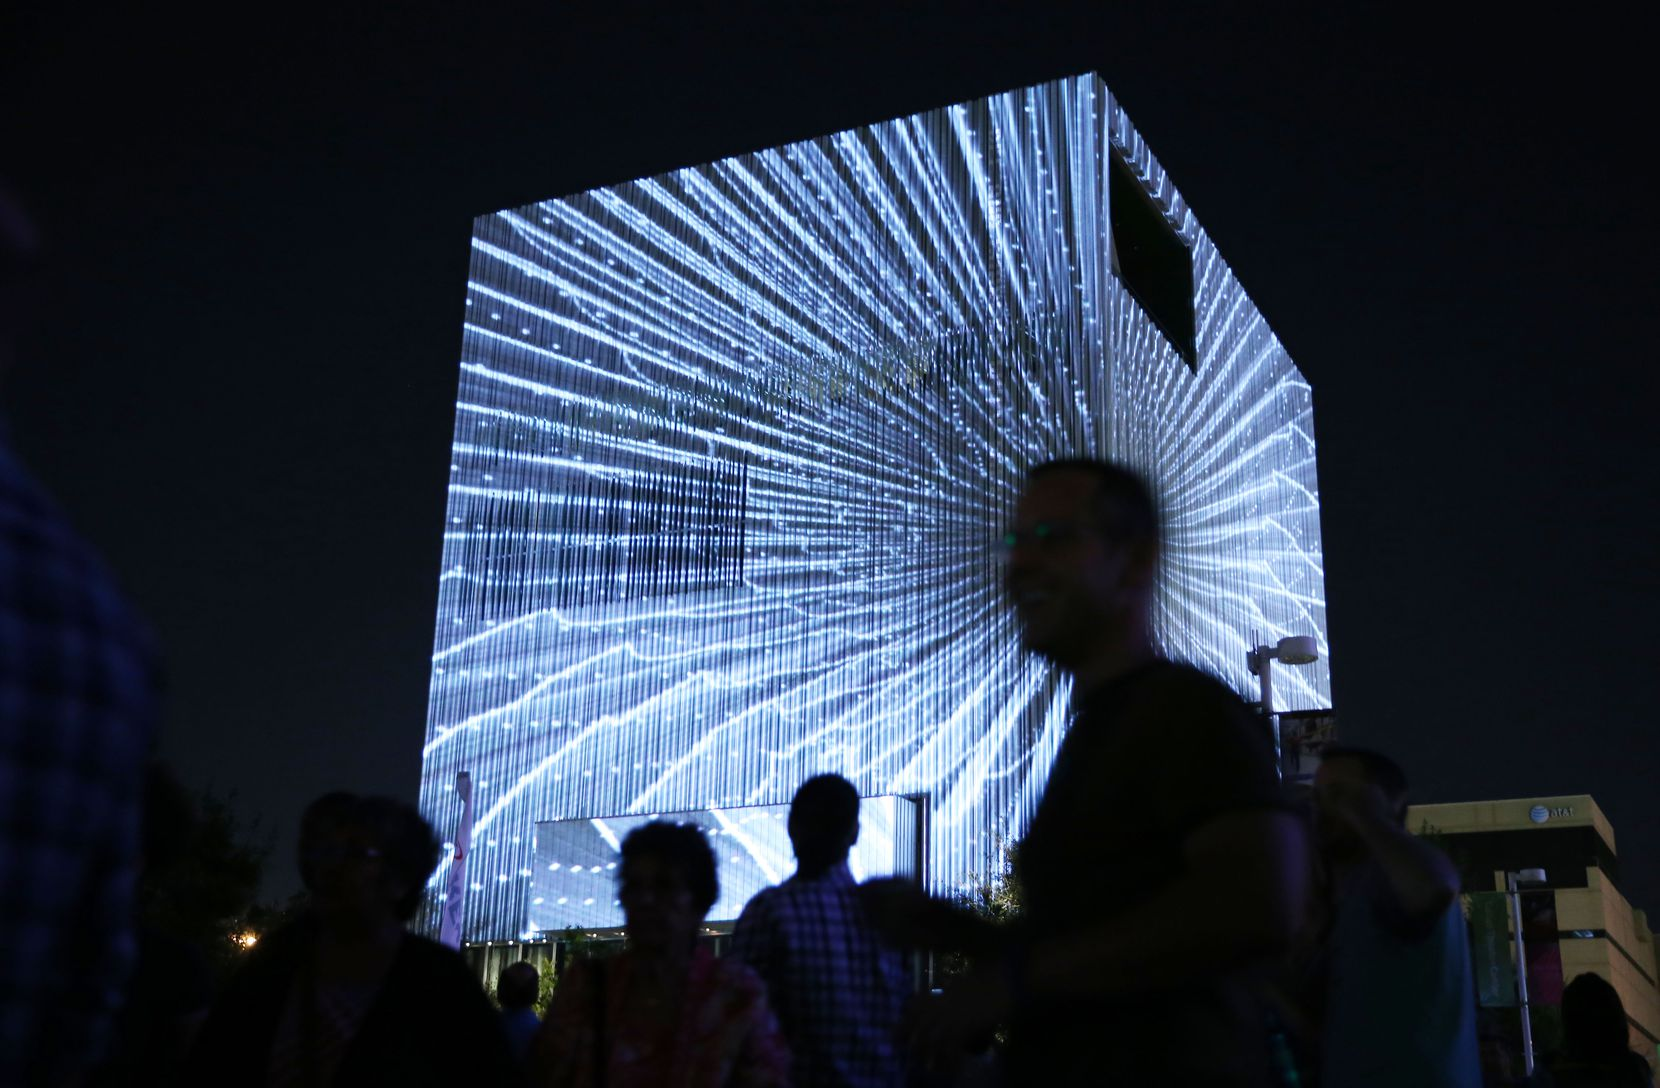 """The Wyly Theatre hosted """"Aurora,"""" an interactive art exhibition in the Dallas Arts District, in October 2015."""